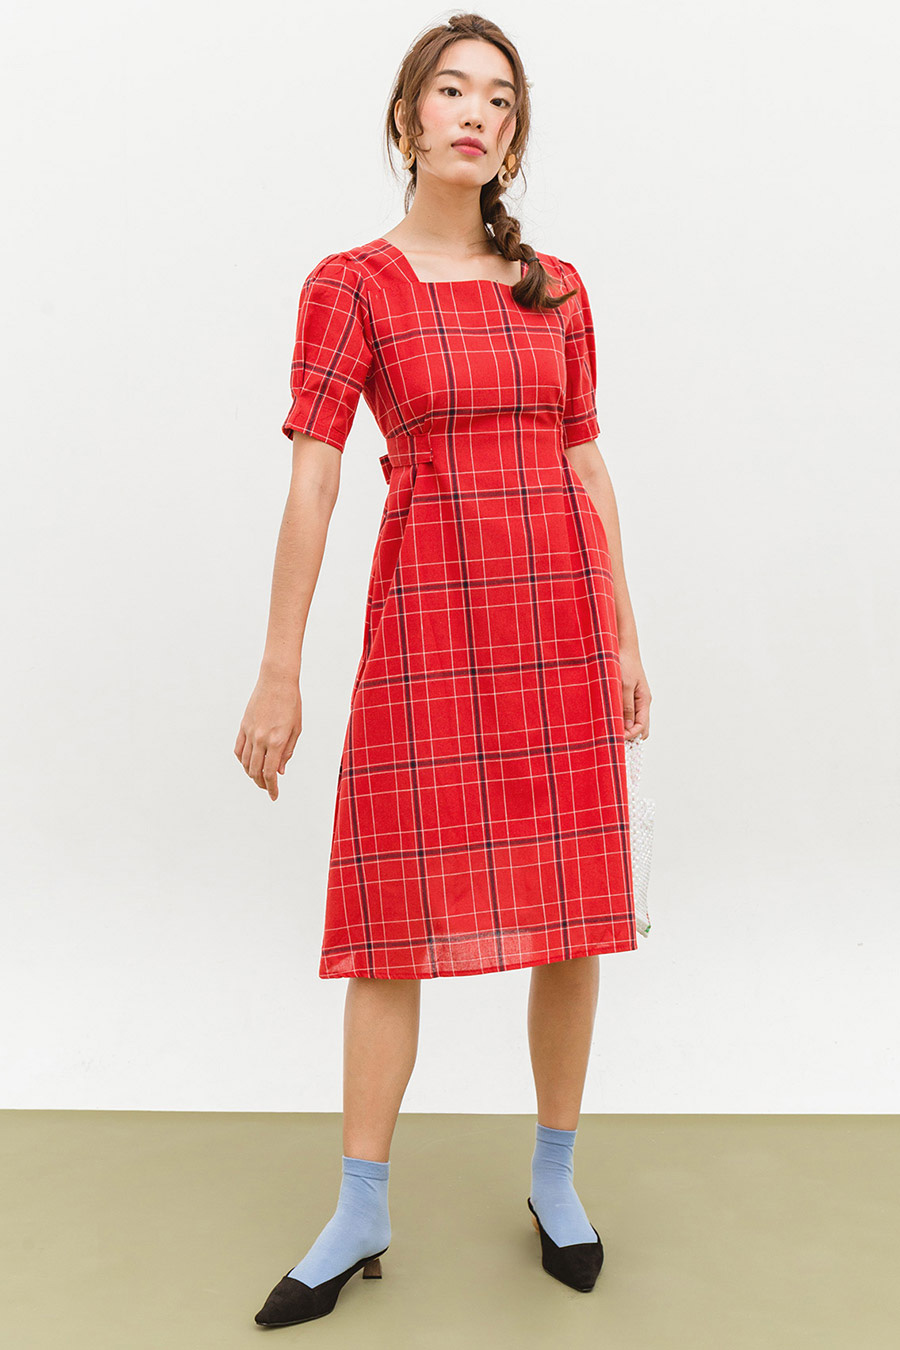 CECIL DRESS - PERSIAN CHECKS